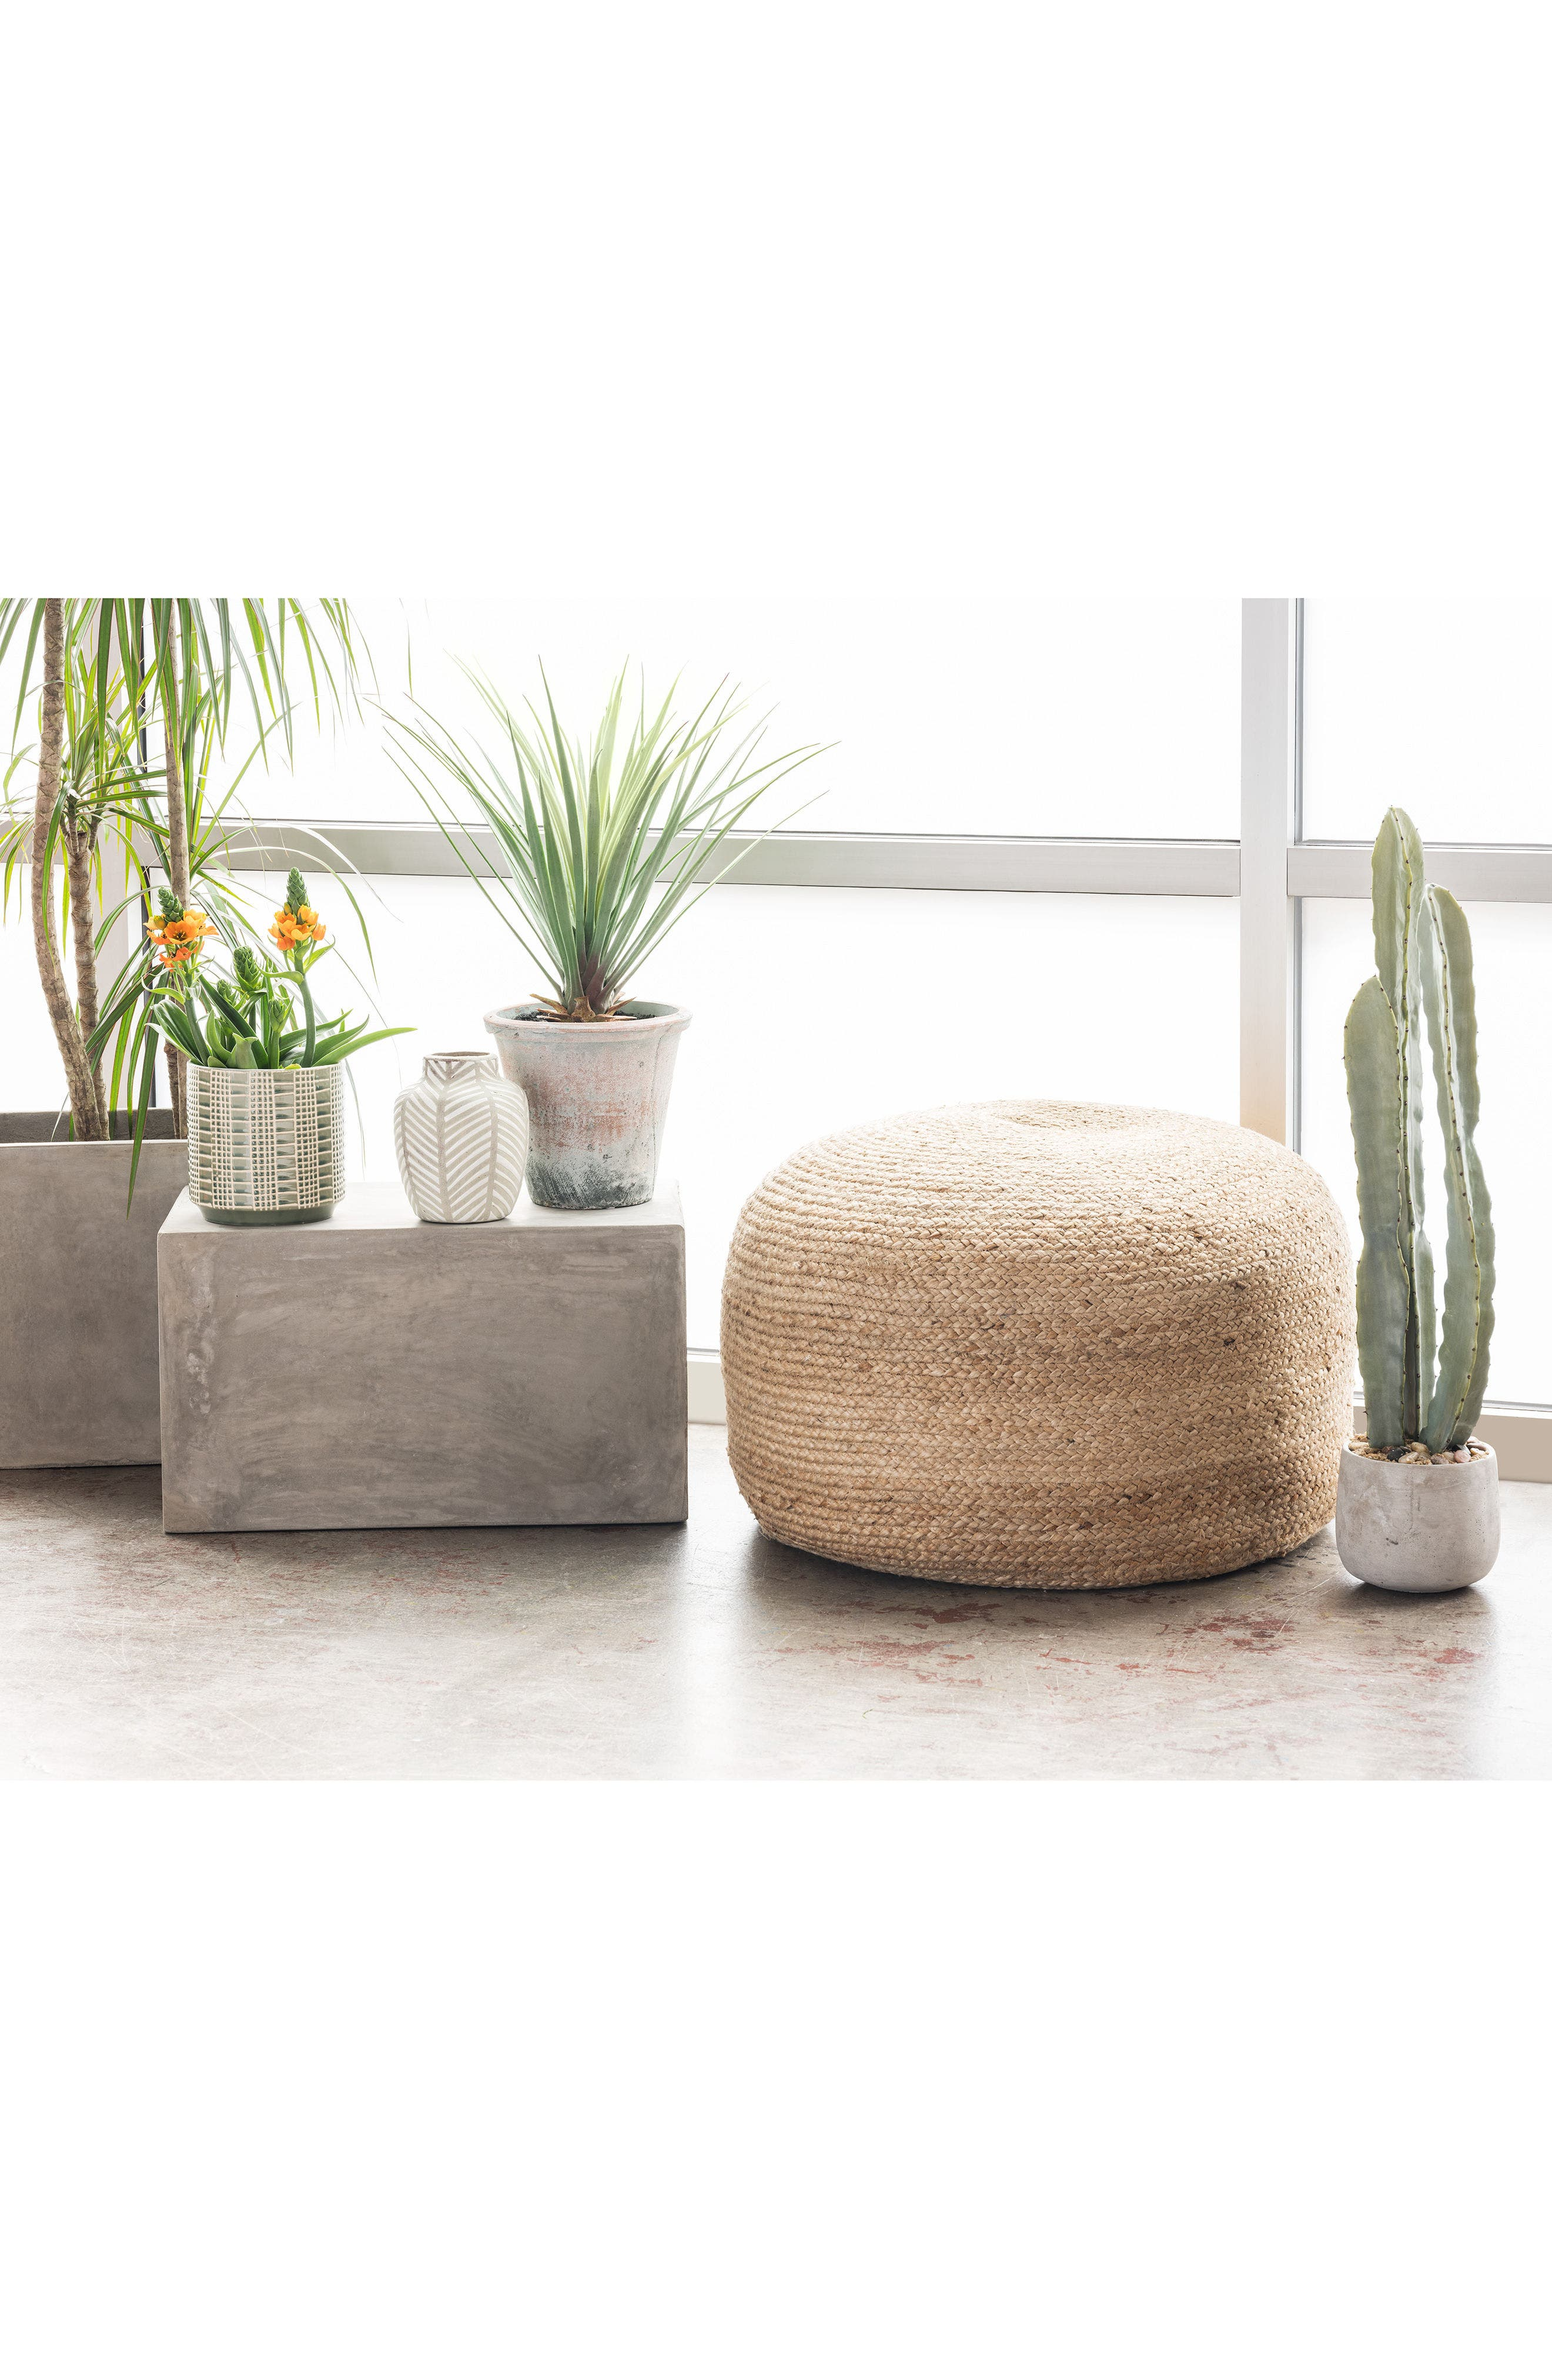 Indoor/Outdoor Jute Pouf,                             Alternate thumbnail 5, color,                             101